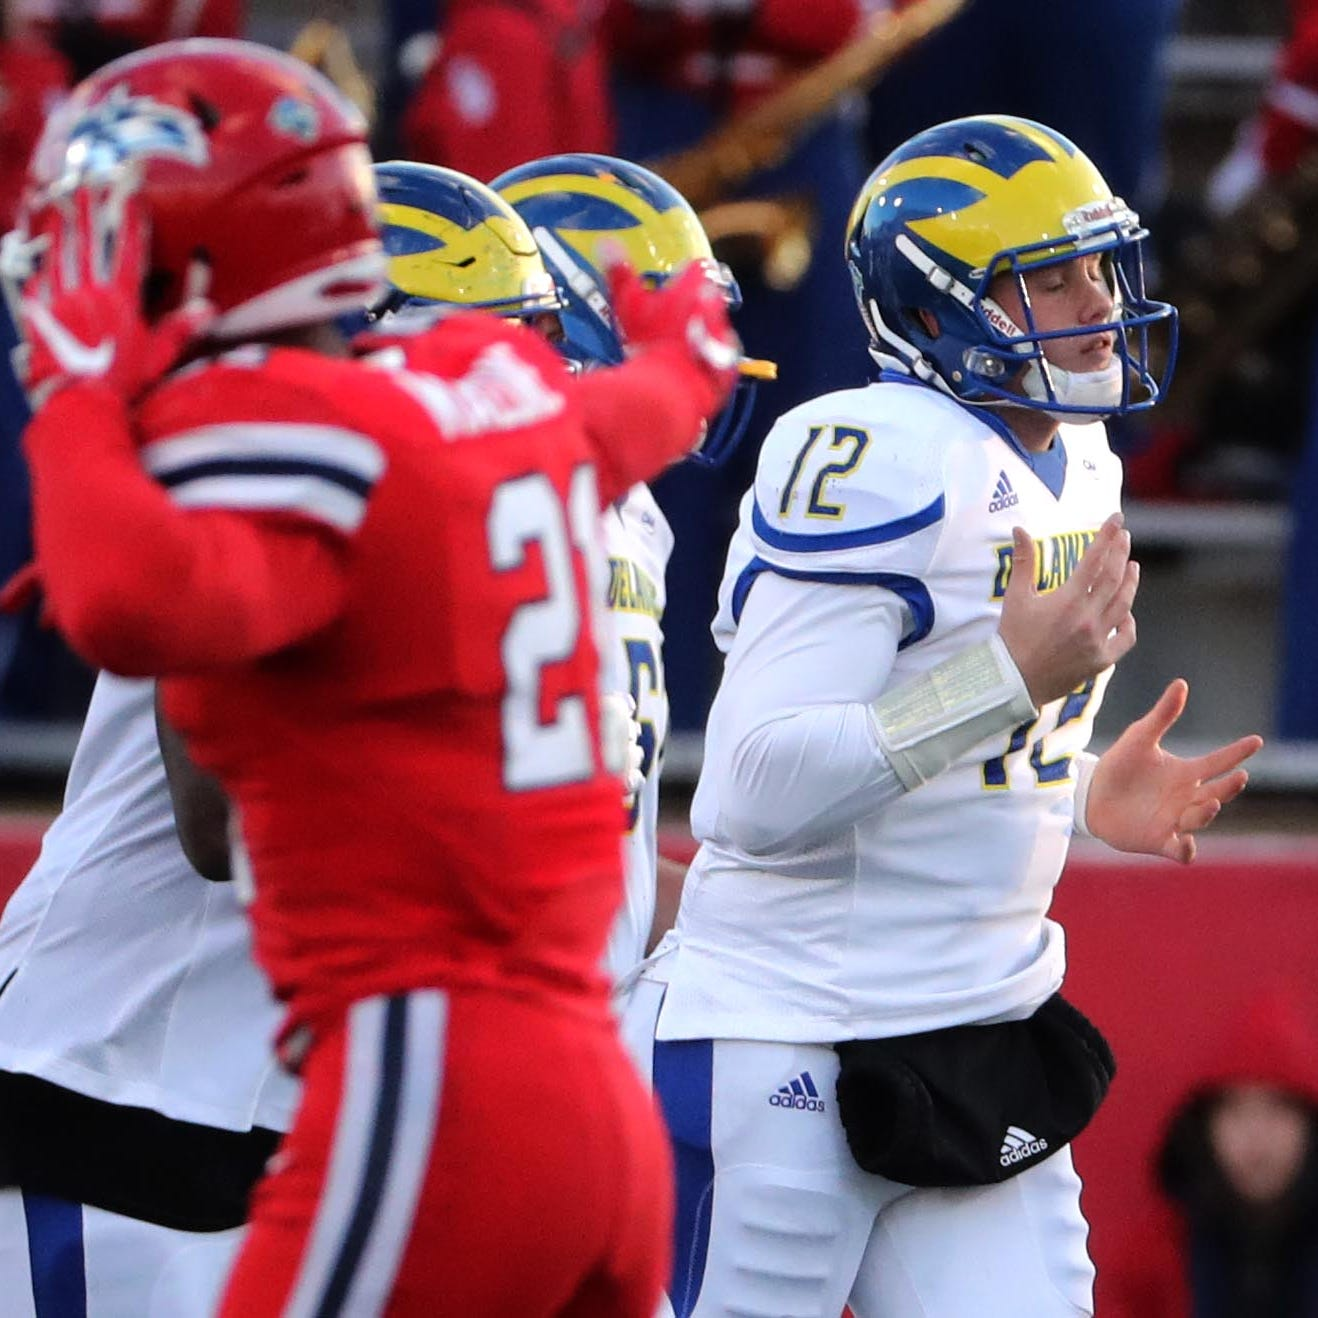 Delaware's offense, kicking game sputter in loss to Stony Brook